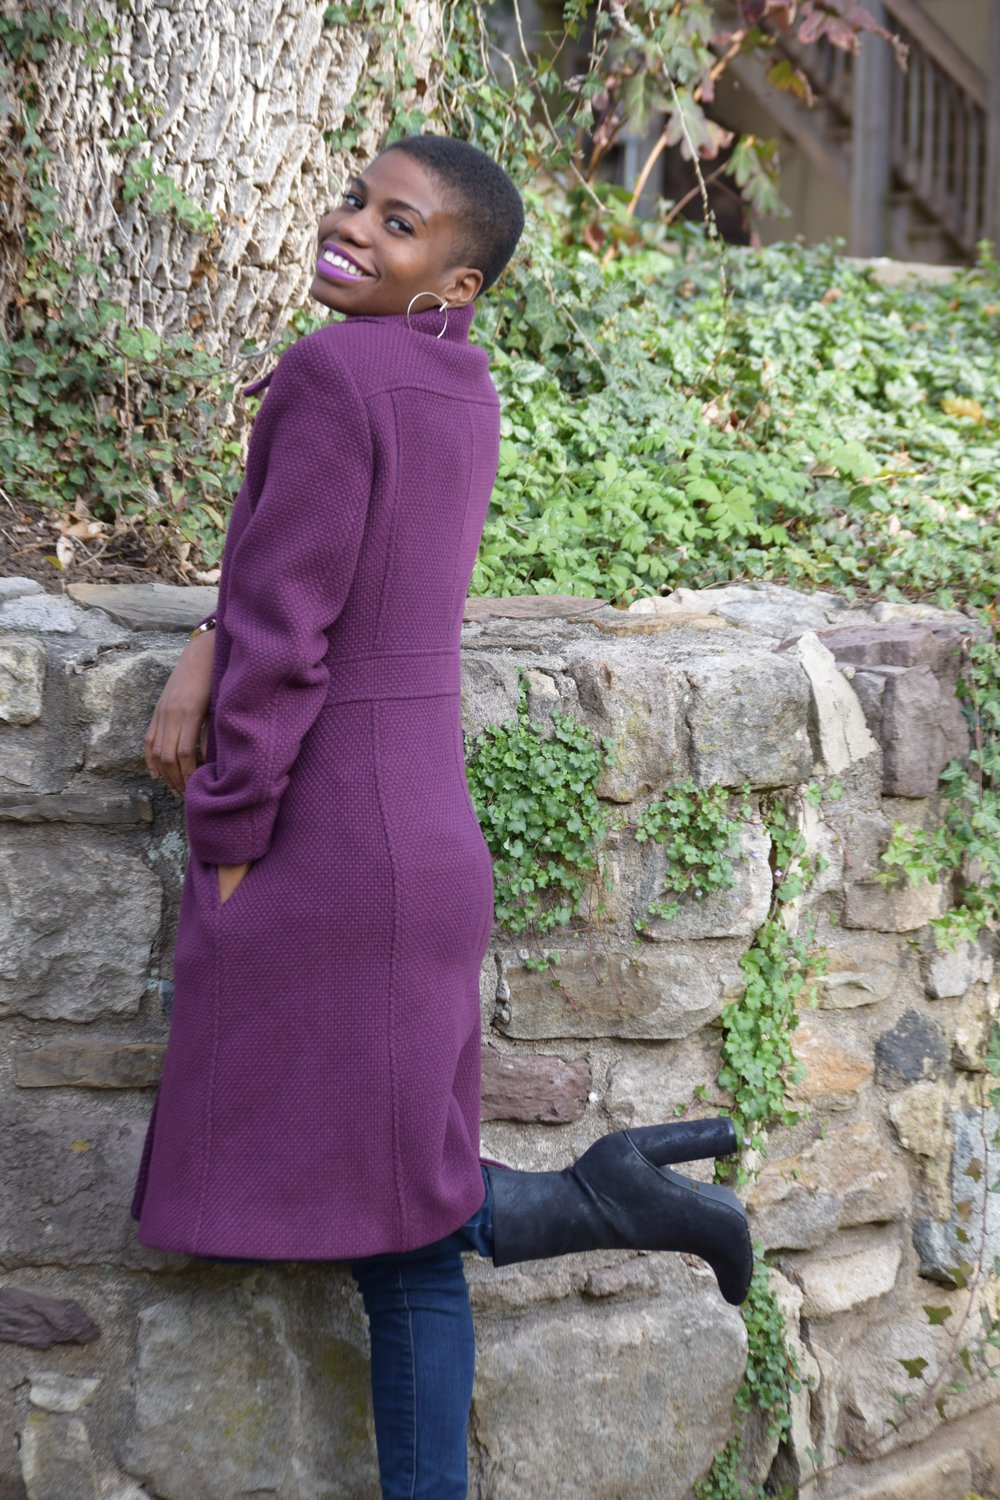 Being yourself never goes out of style ---------------------------------------------- Coat: Marcinao for Guess (Thrifted) From Clothes Mentor Shoes: Cape Robbin (Thrifted) from Plato's Closet Photo: Lauren Herwig